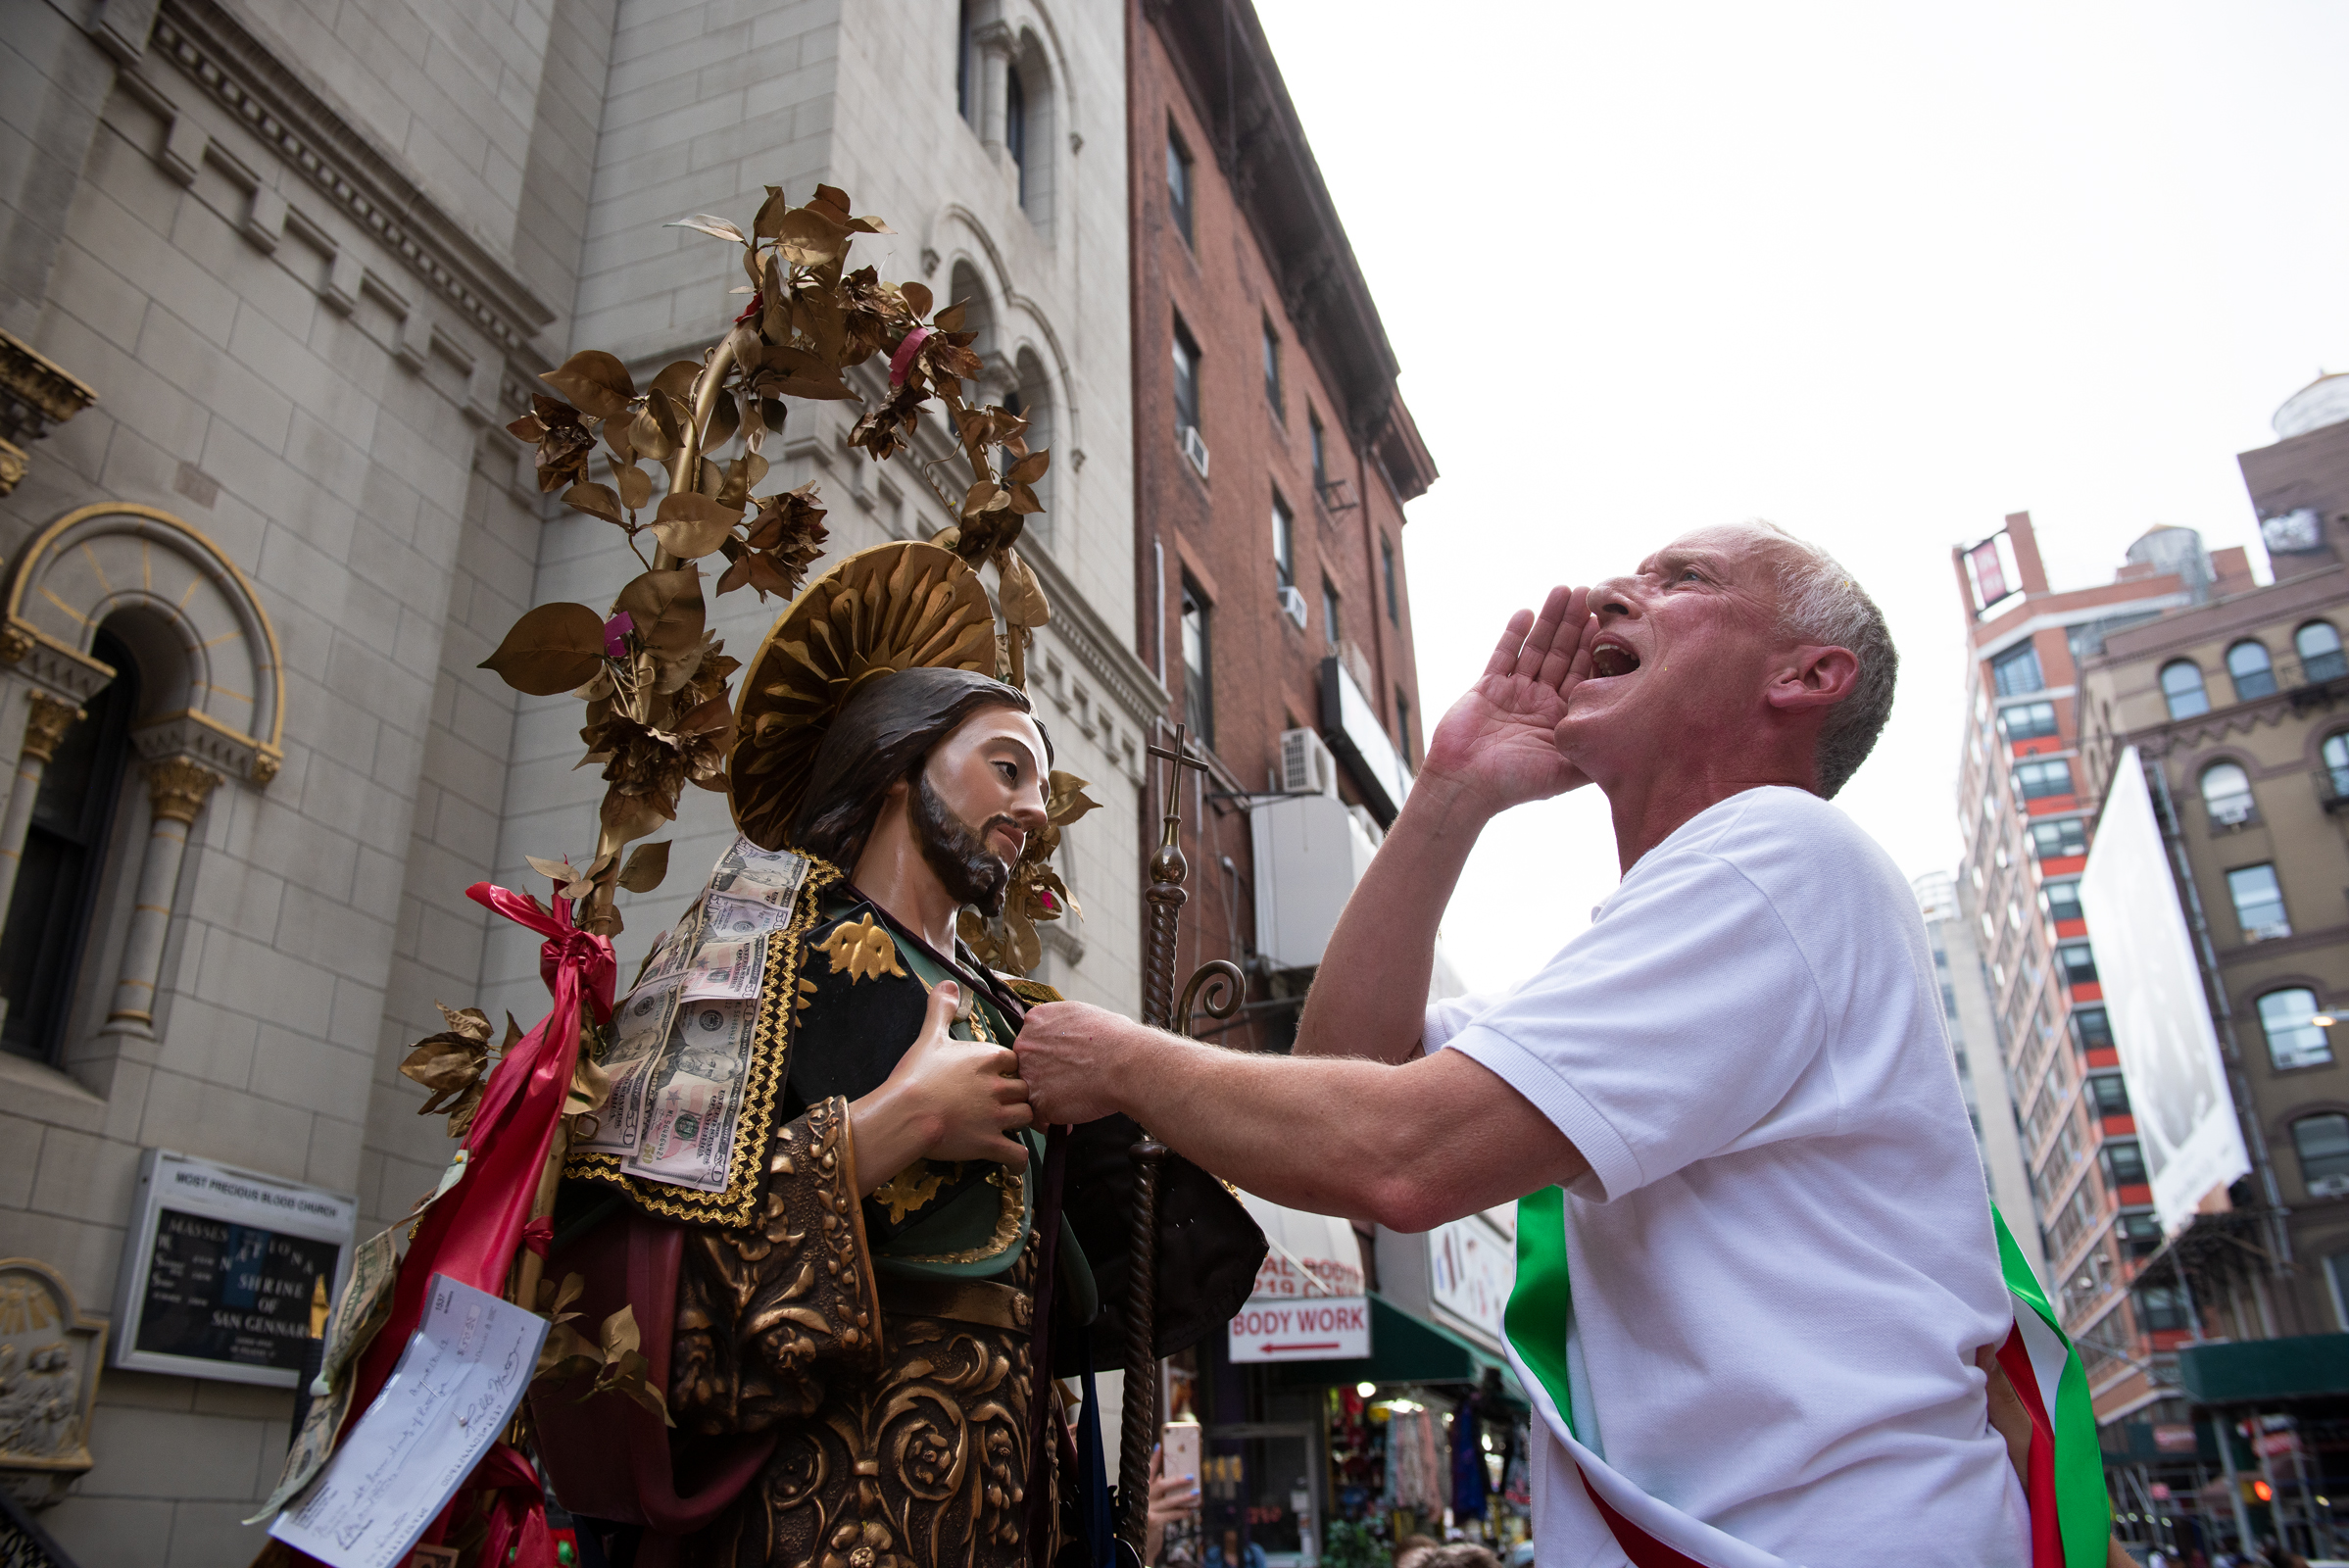 SAN ROCCO, LITTLE ITALY, NEW YORK